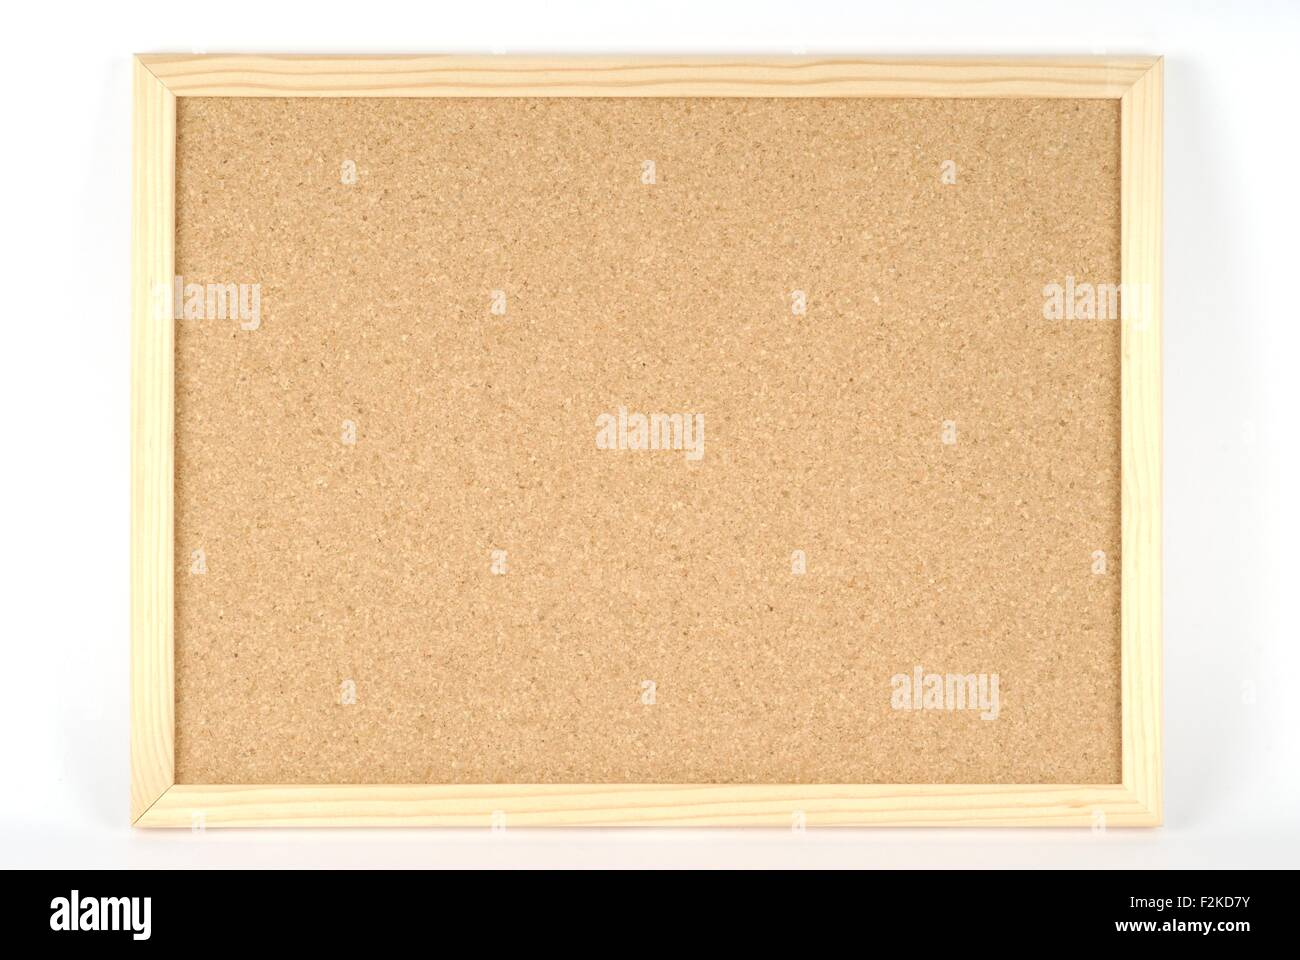 cork board for announcements on white background - Stock Image